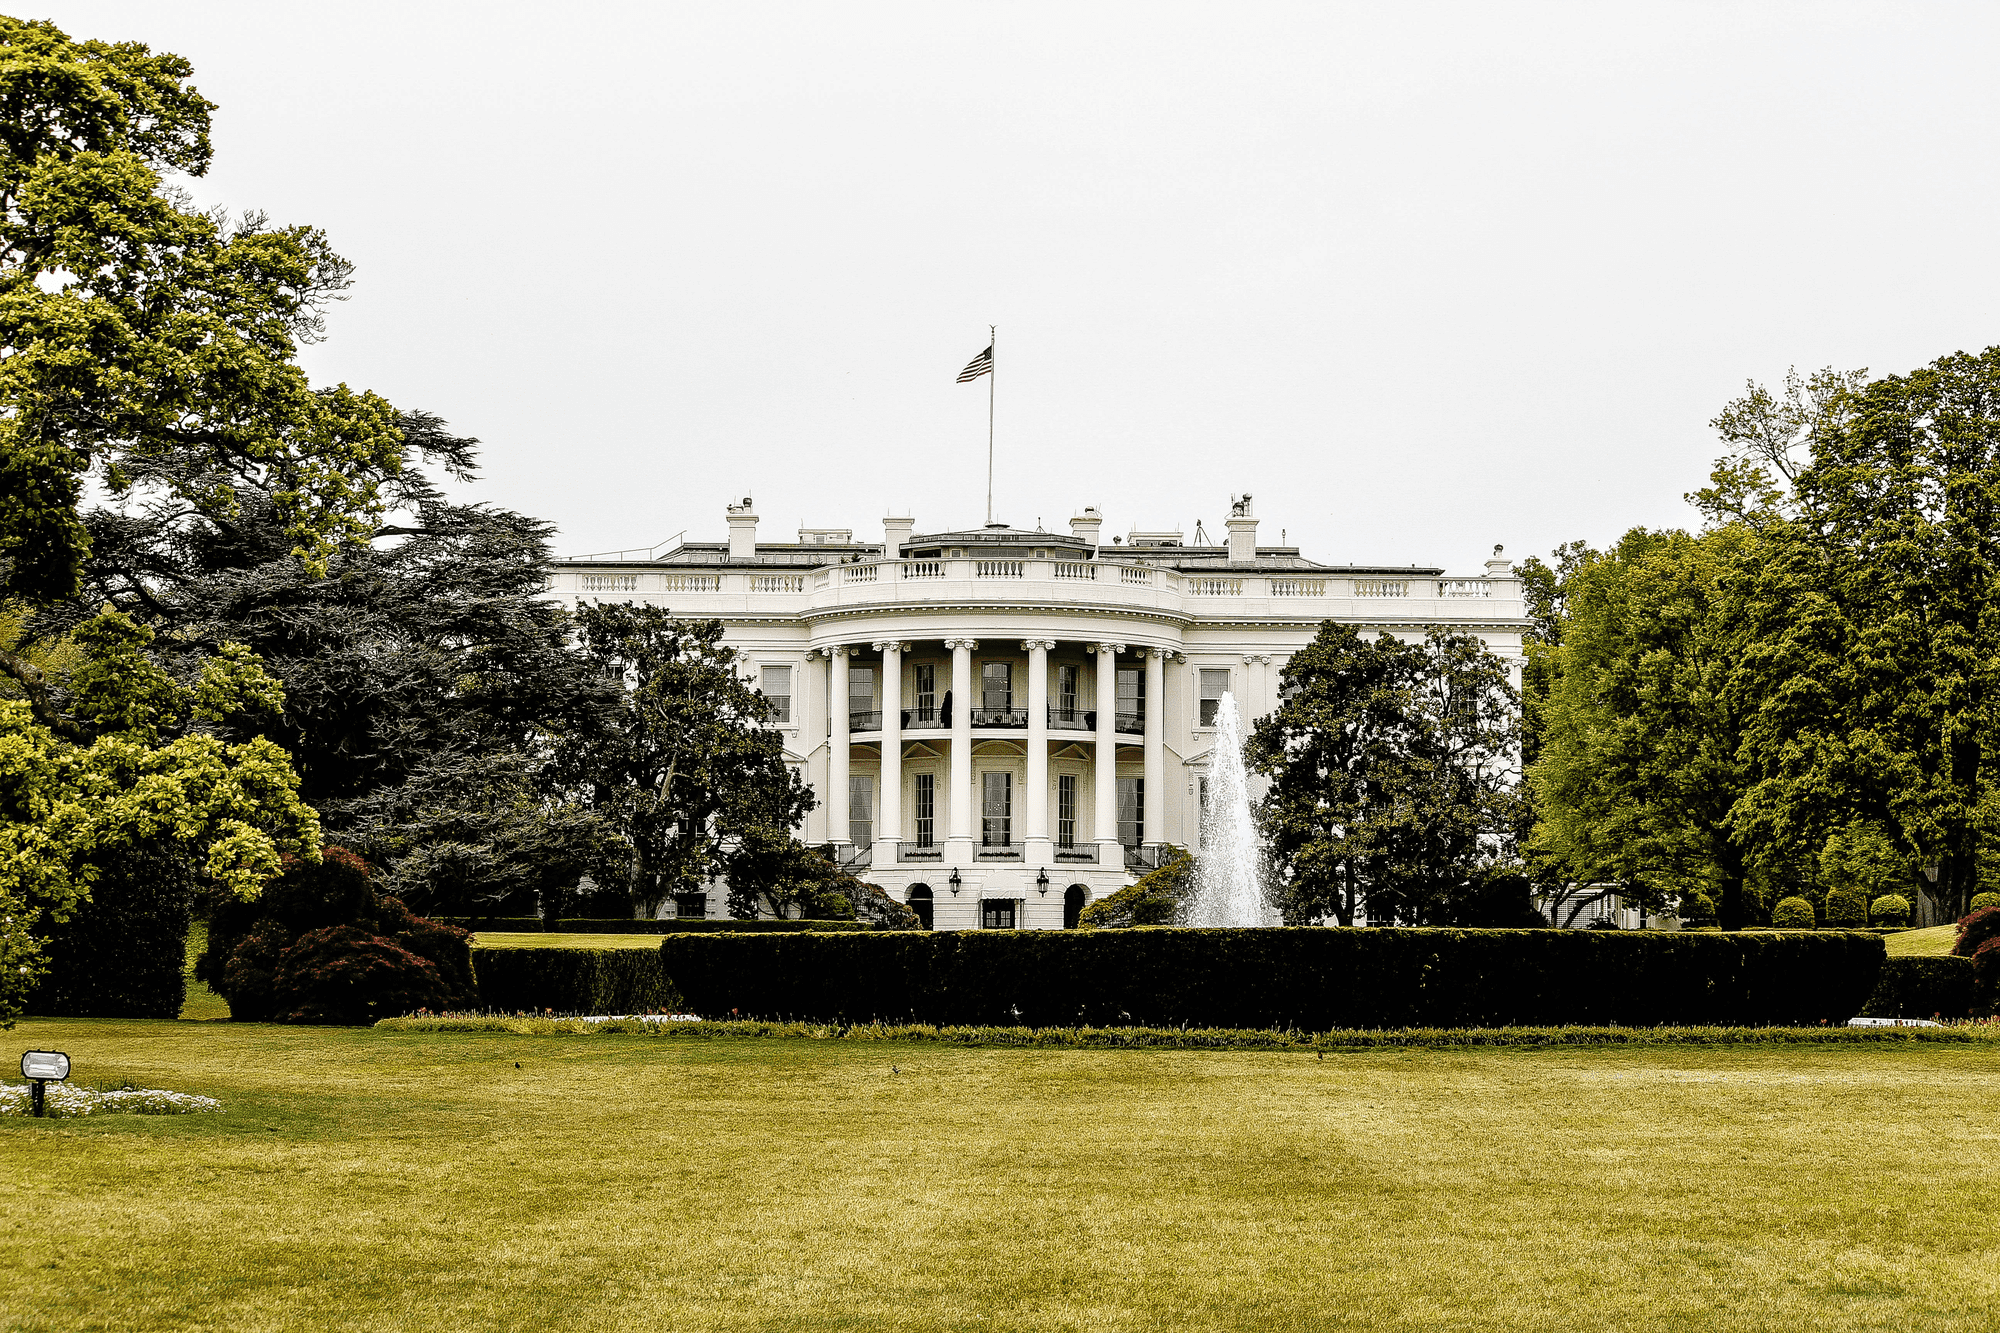 The White House Trends BrandGraph®After President Trump Tests Positive for COVID-19